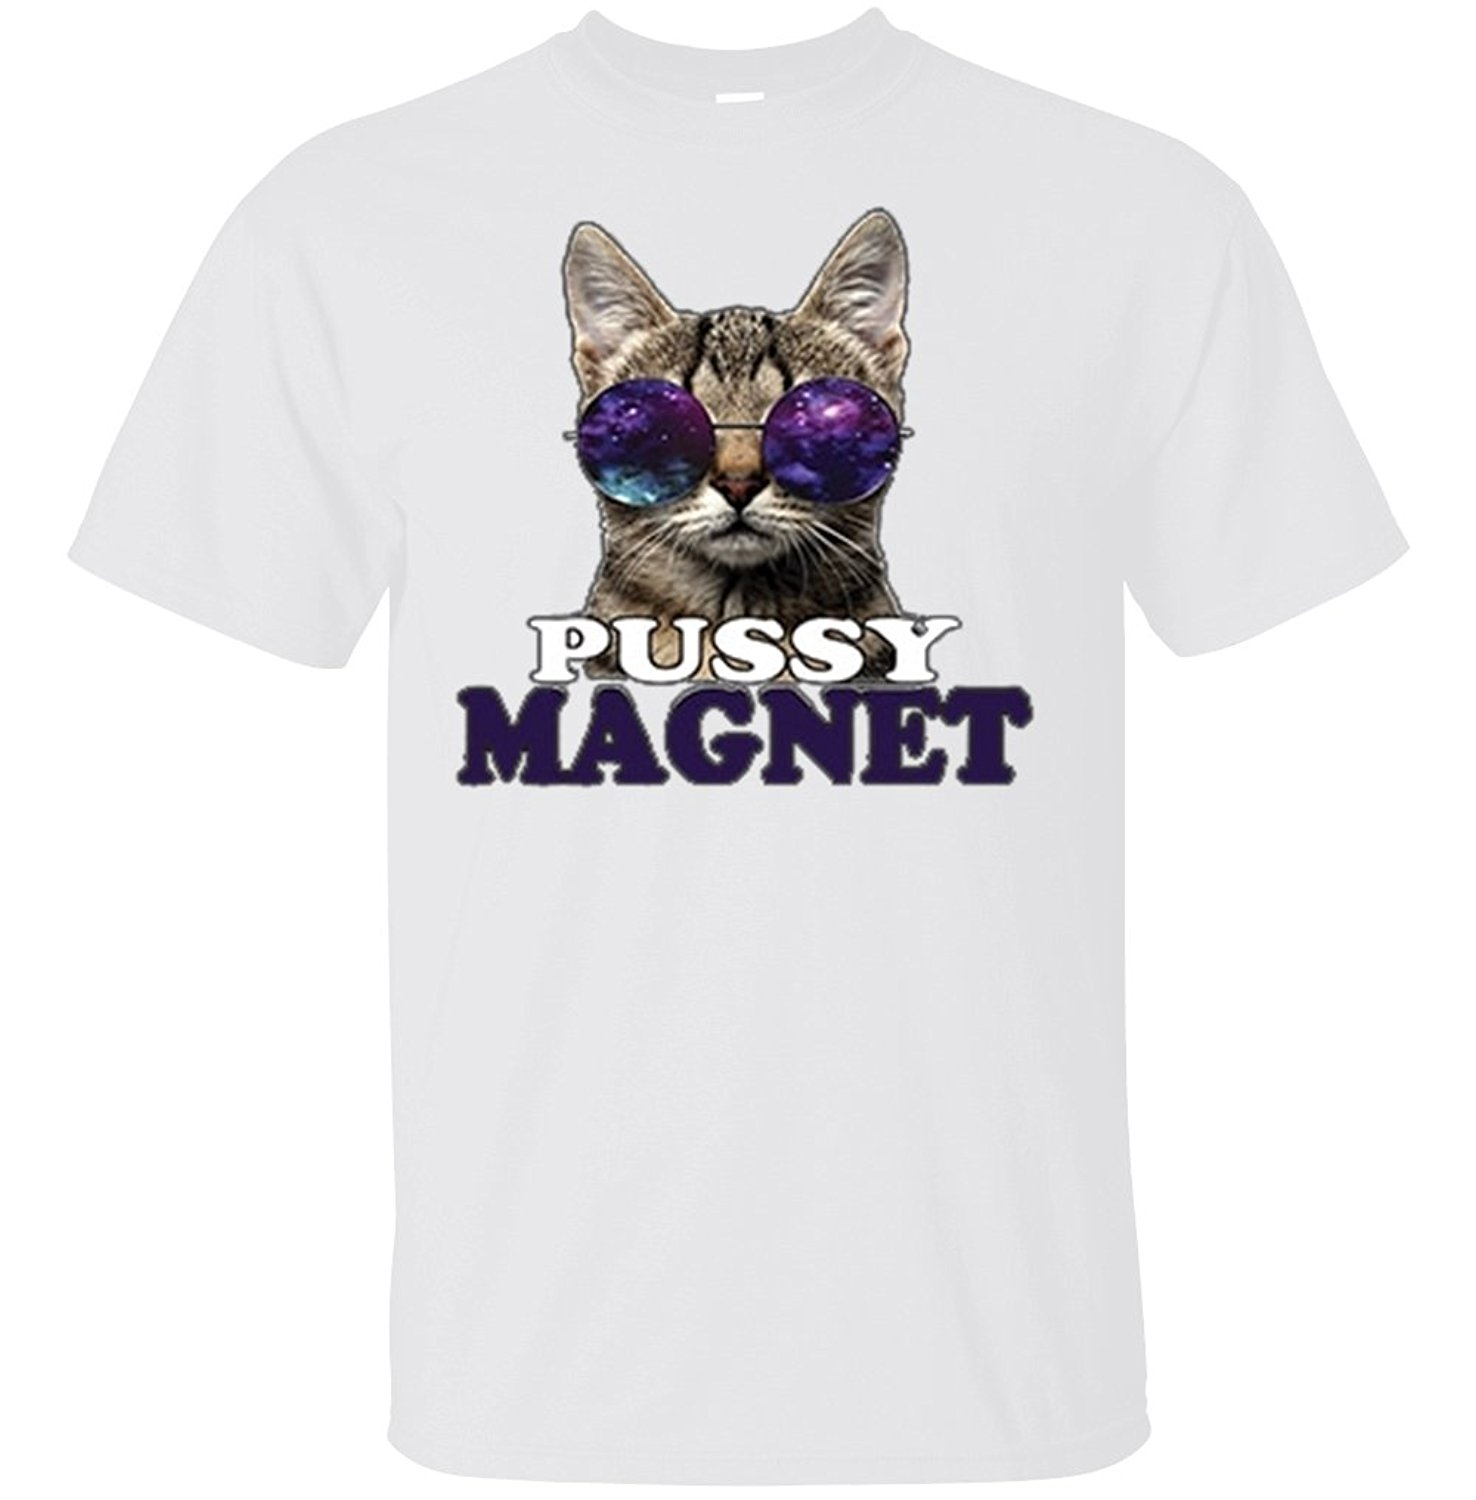 2018 Hot Summer Funny Cool Fashion Printed Hipster Tops Men'S T Shirt Men'S Pussy Magnet Cat Sunglasses Funny Meme T Shirt